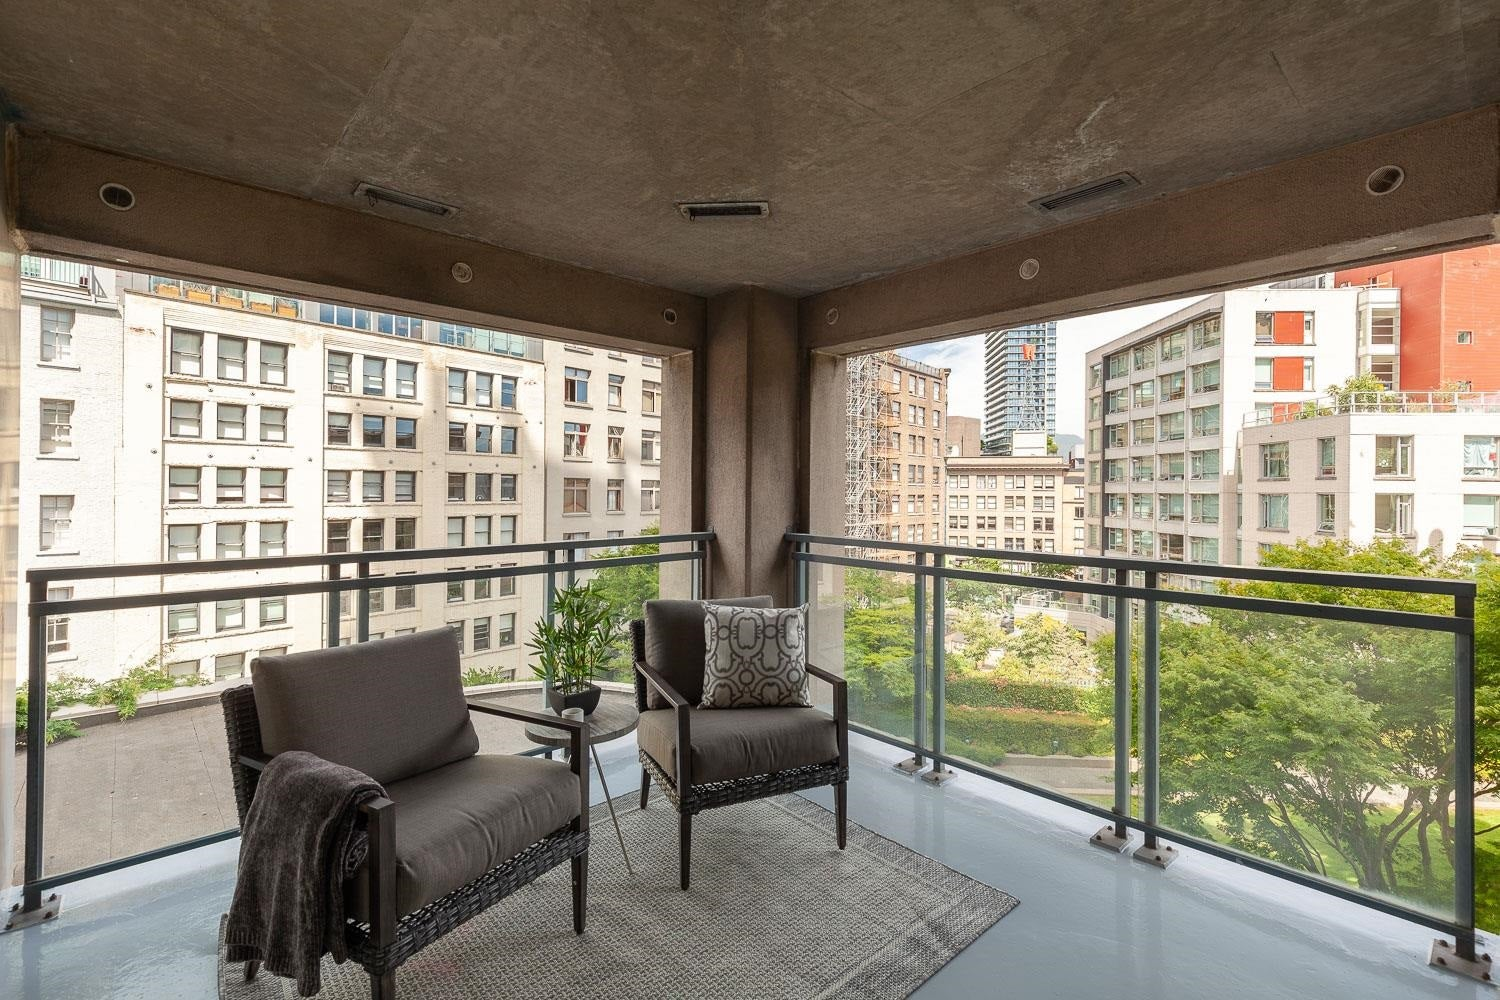 602 183 KEEFER PLACE - Downtown VW Apartment/Condo for sale, 2 Bedrooms (R2620893) - #1